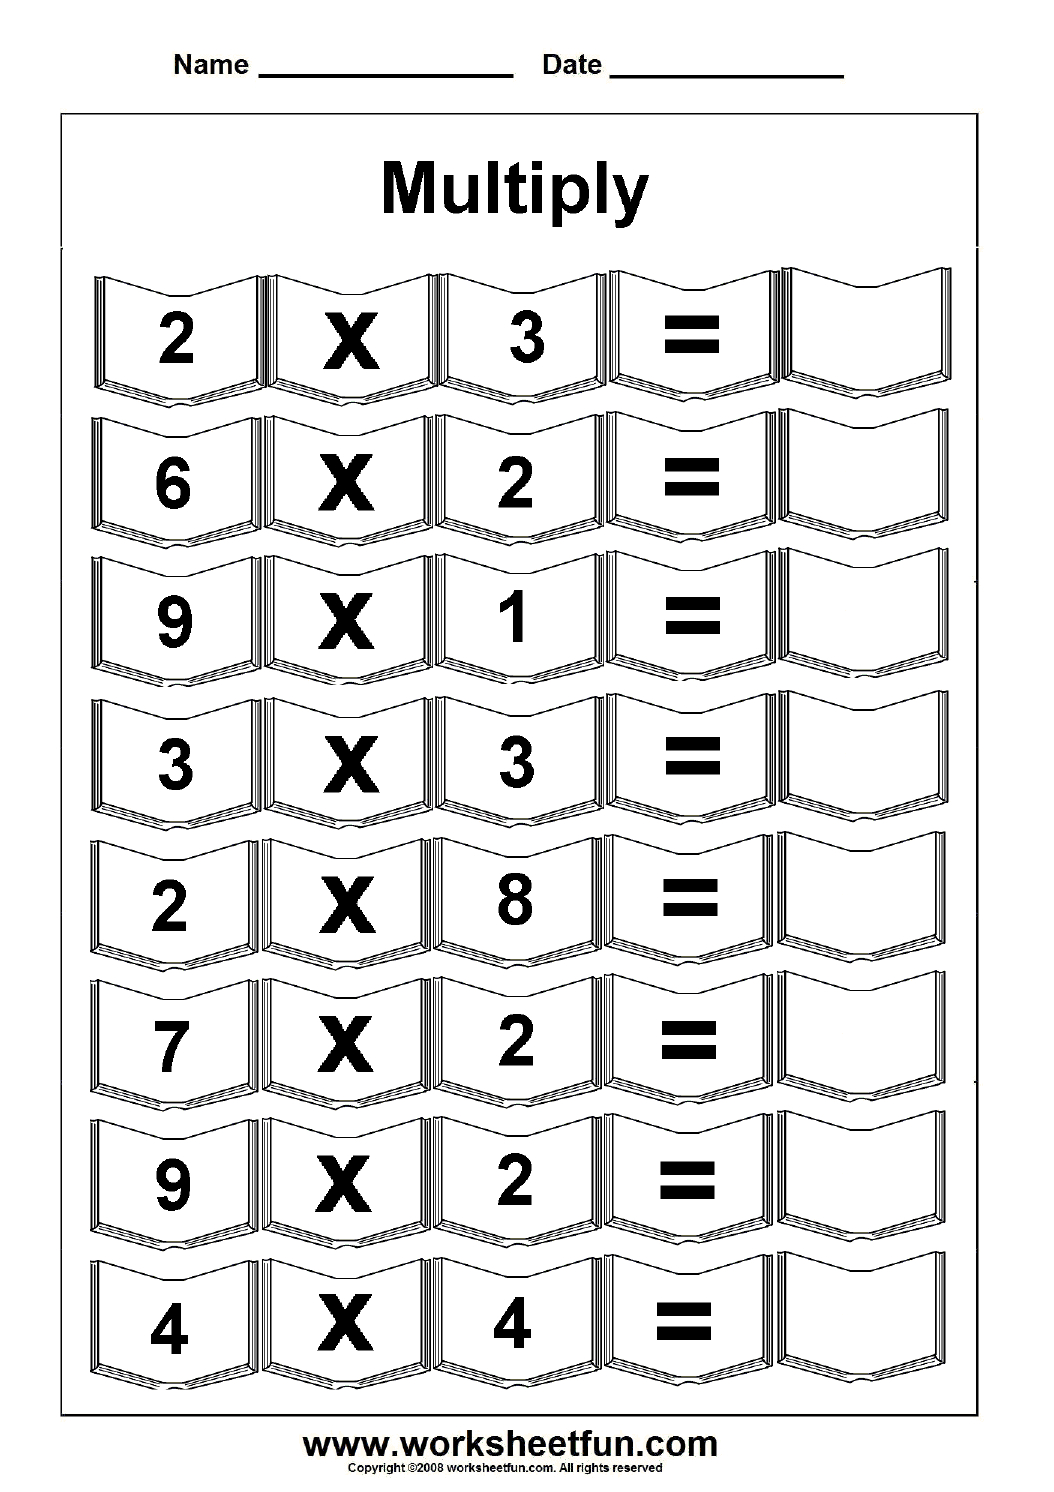 Multiplication – 5 Worksheets / Free Printable Worksheets – Worksheetfun - Free Printable Worksheets